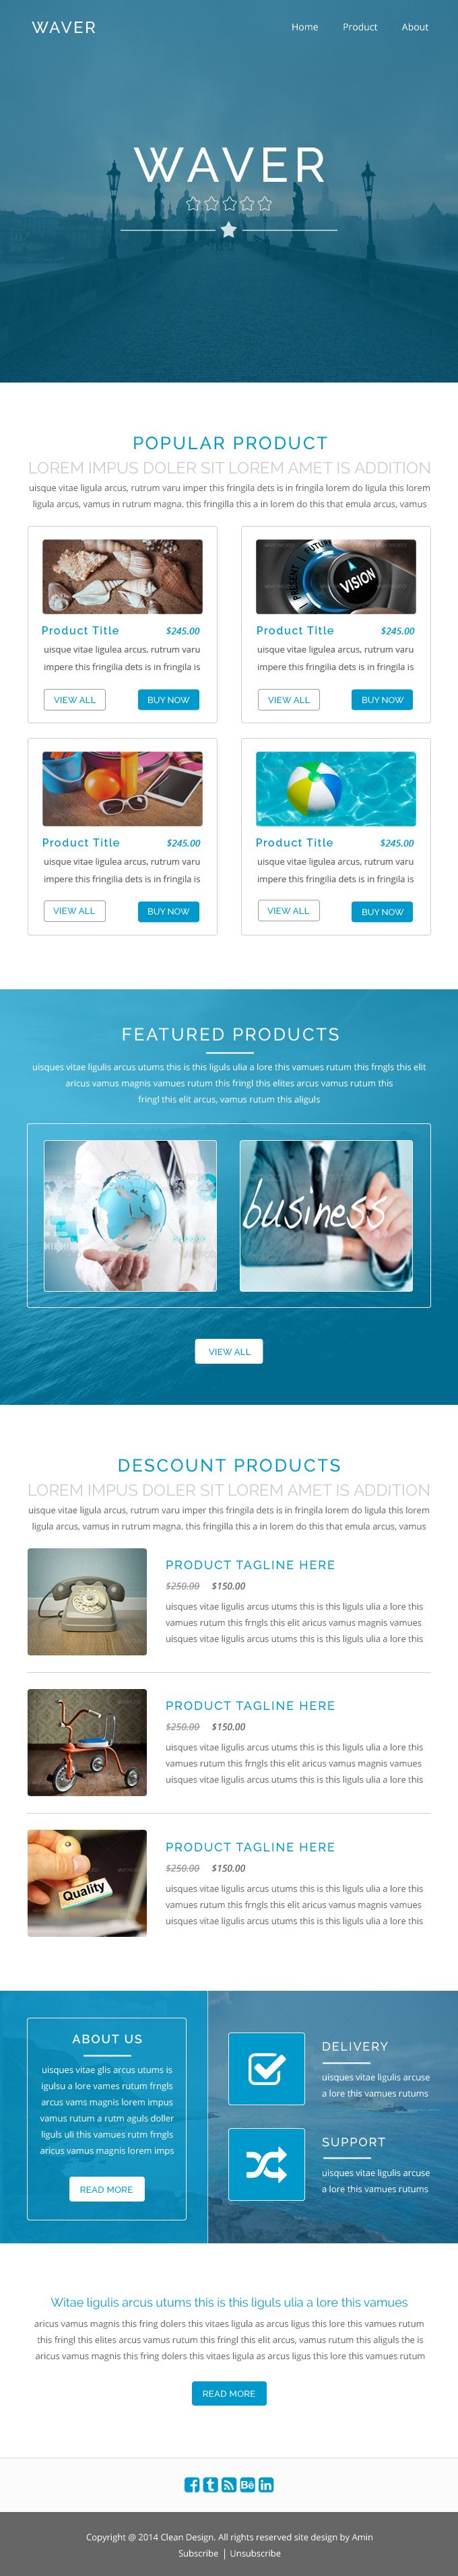 mailchimp ecommerce templates - best 25 email templates ideas on pinterest email